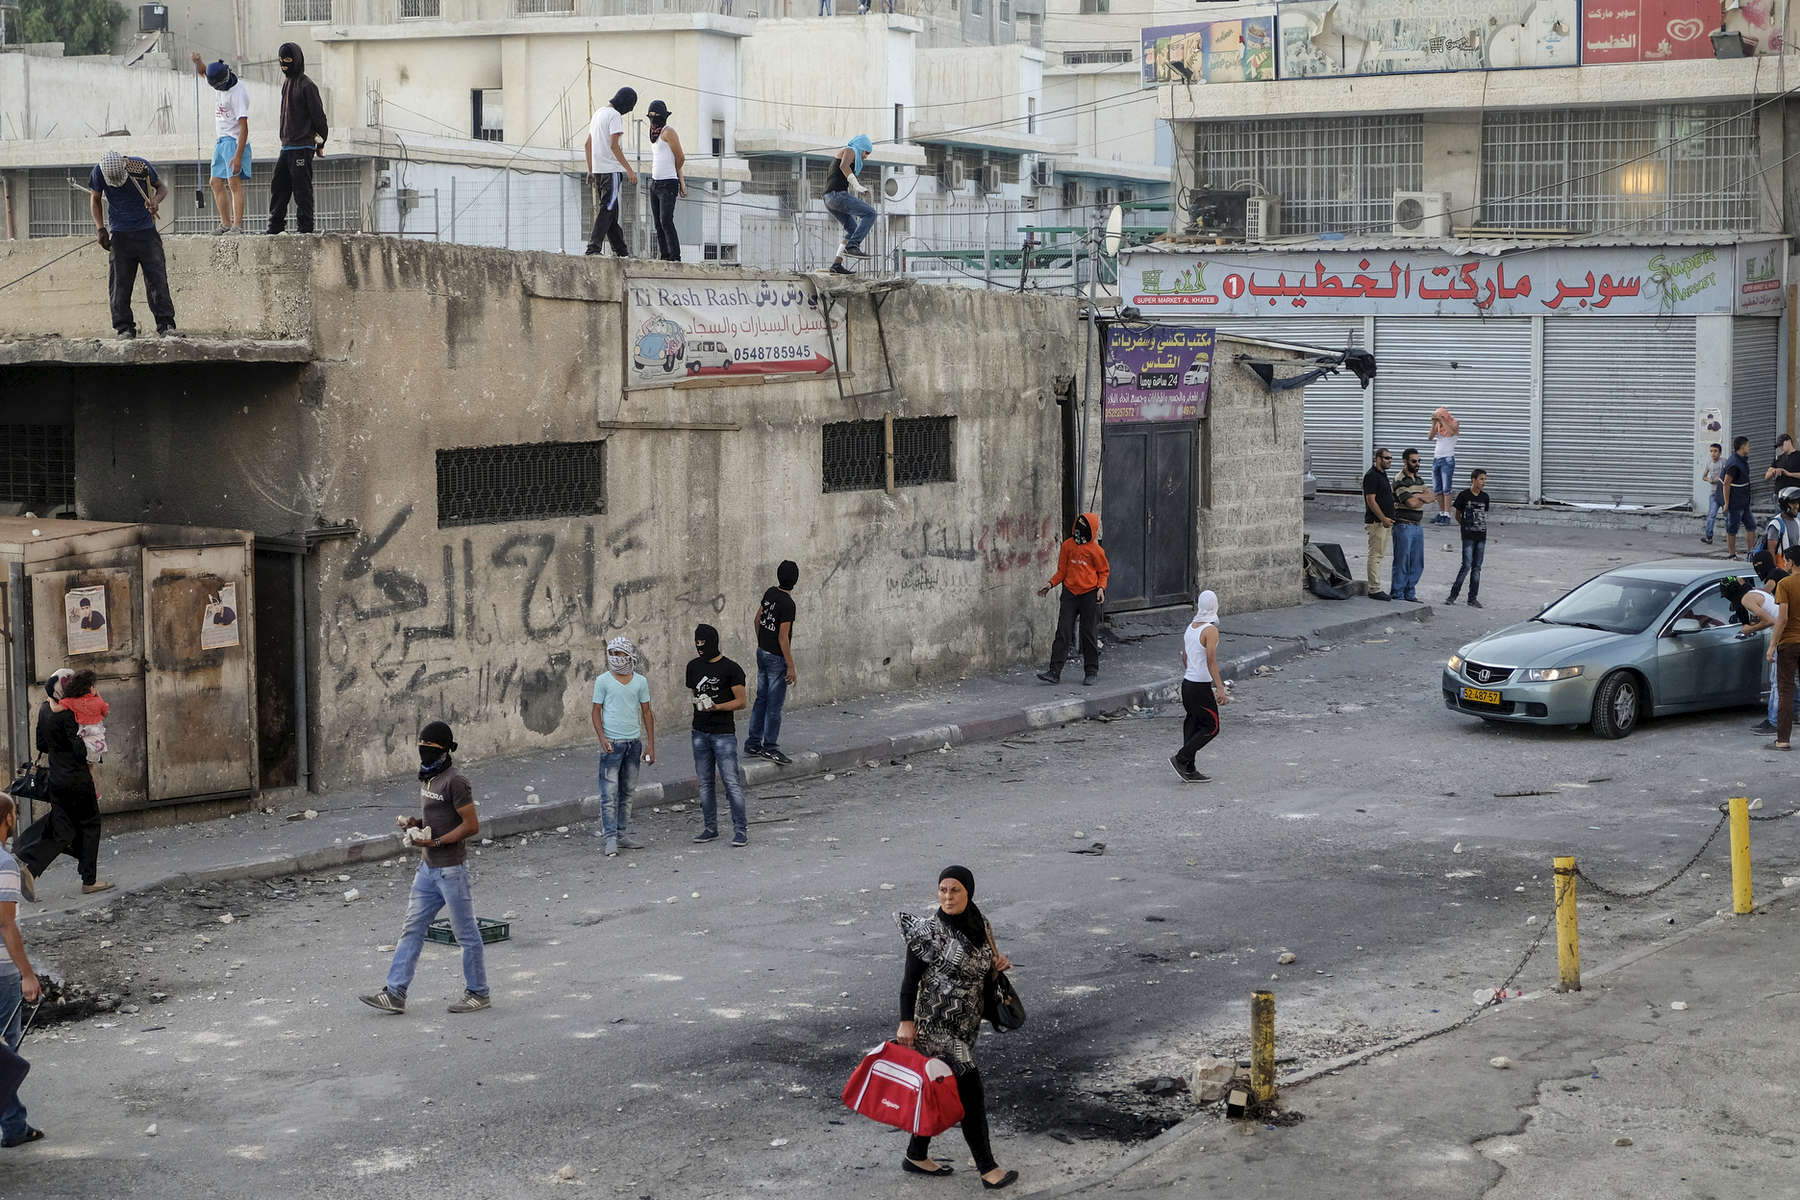 2014. Jerusalem.  Israel. Shuafat Refugee Camp in East Jerusalem during clashes between Palestinian youths and Israeli border police.  Although ostensibly the clash was in solidarity with the Gazans under siege in Operation Protective Edge, the clashes are also a near daily occurrence.